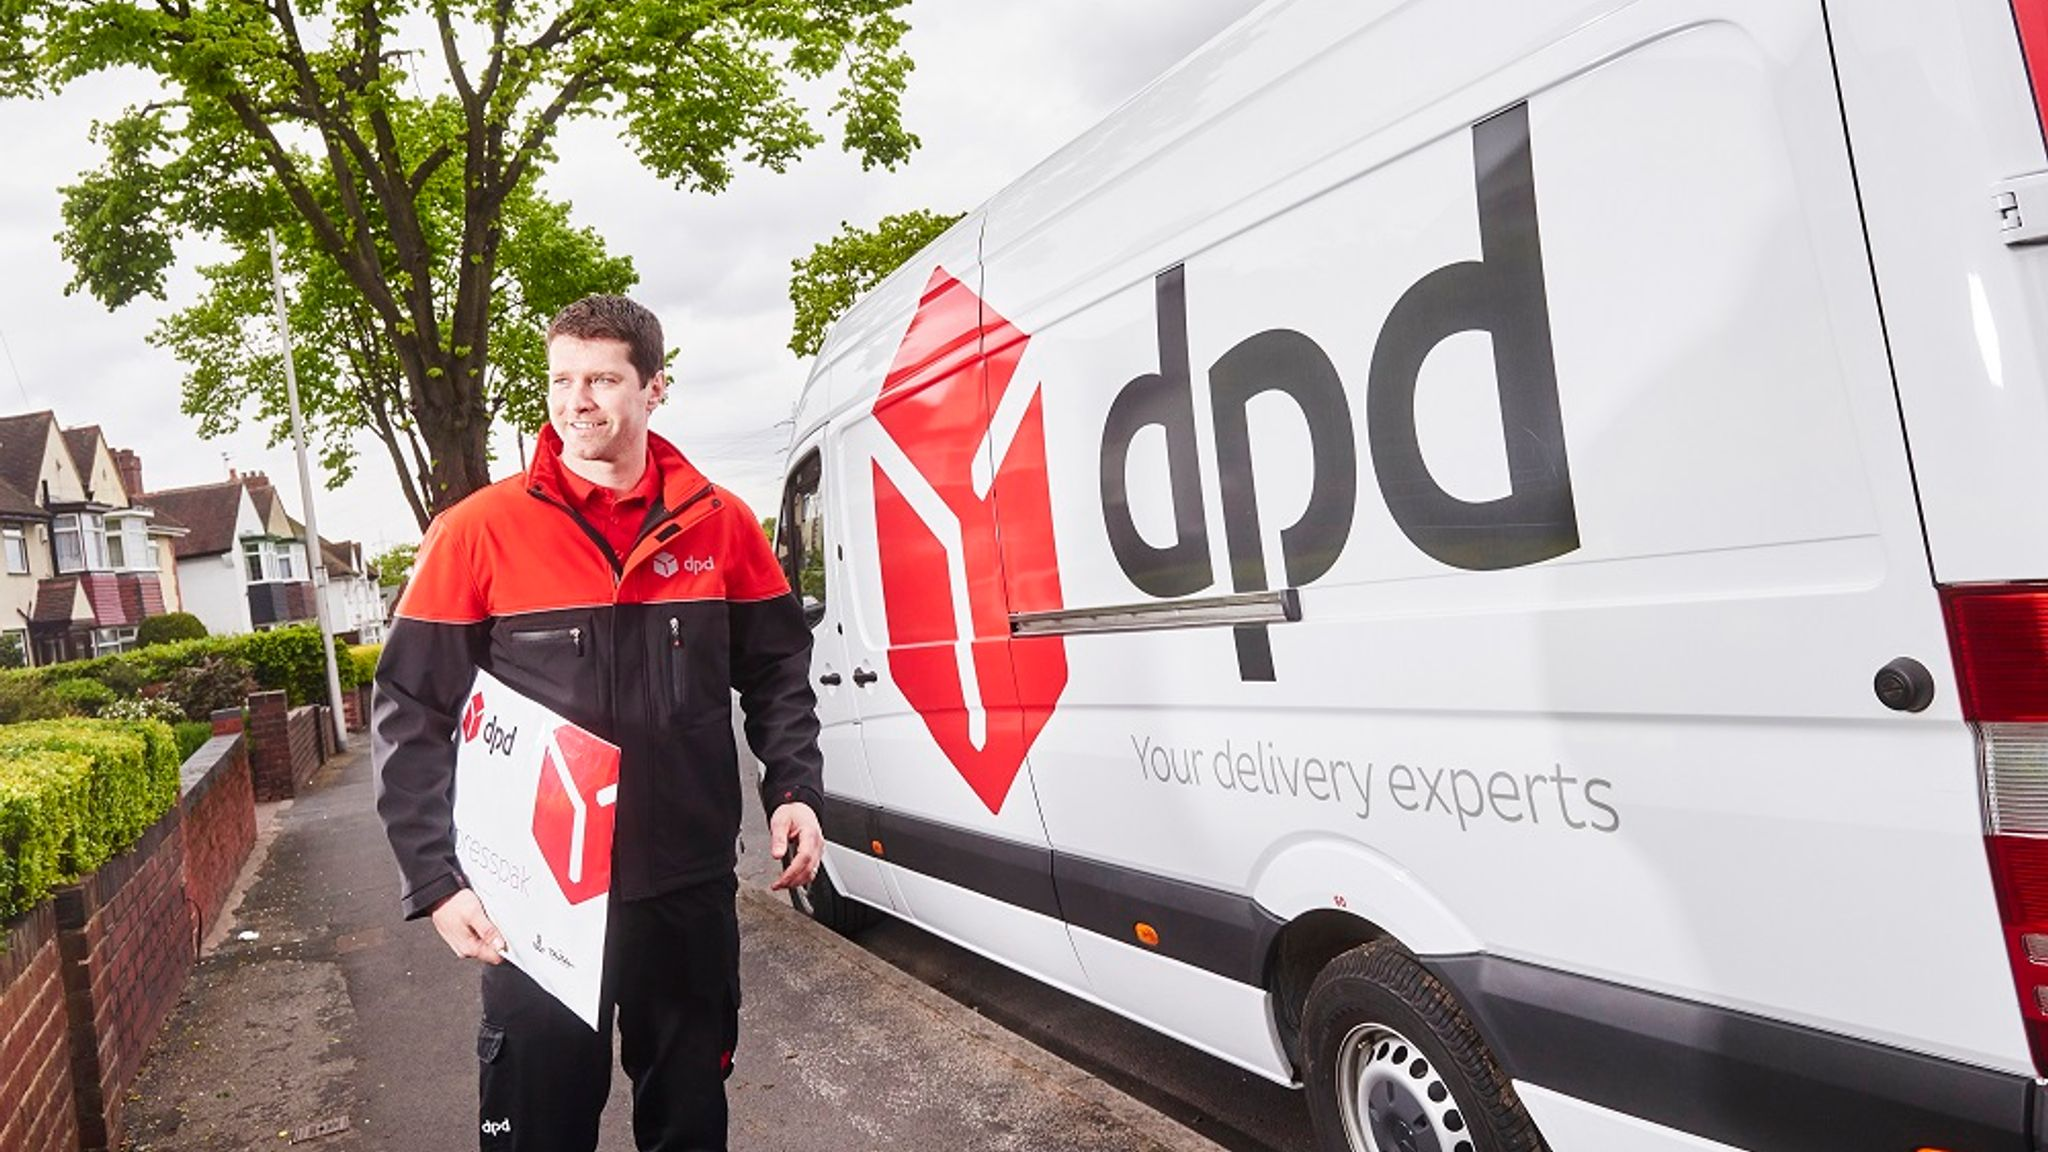 DPD & B&Q to Hire 7,500 as Demand Grows